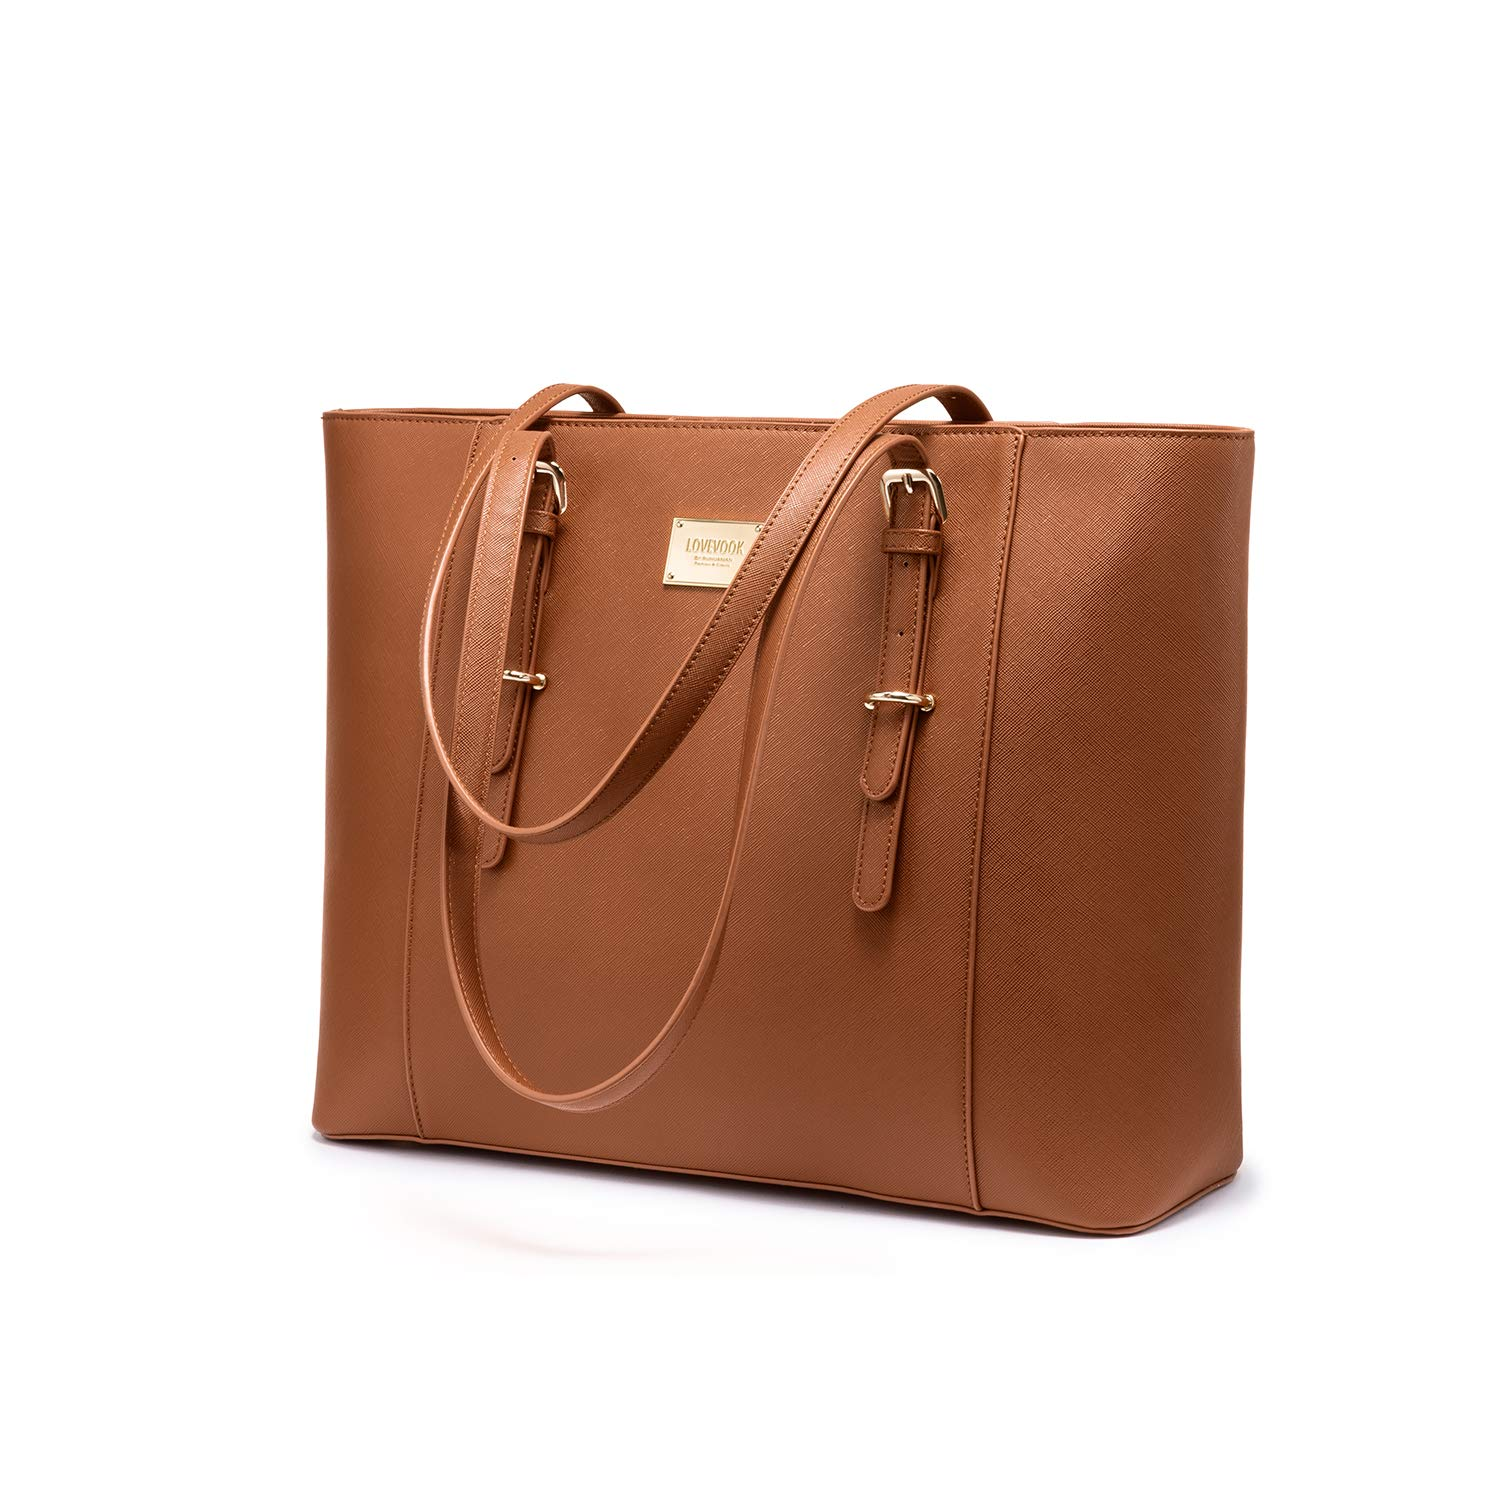 8b934f33937b Laptop Bag for Women Large Office Handbags Briefcase Fits Up to 15.6 inch  (Updated Version)-Brown